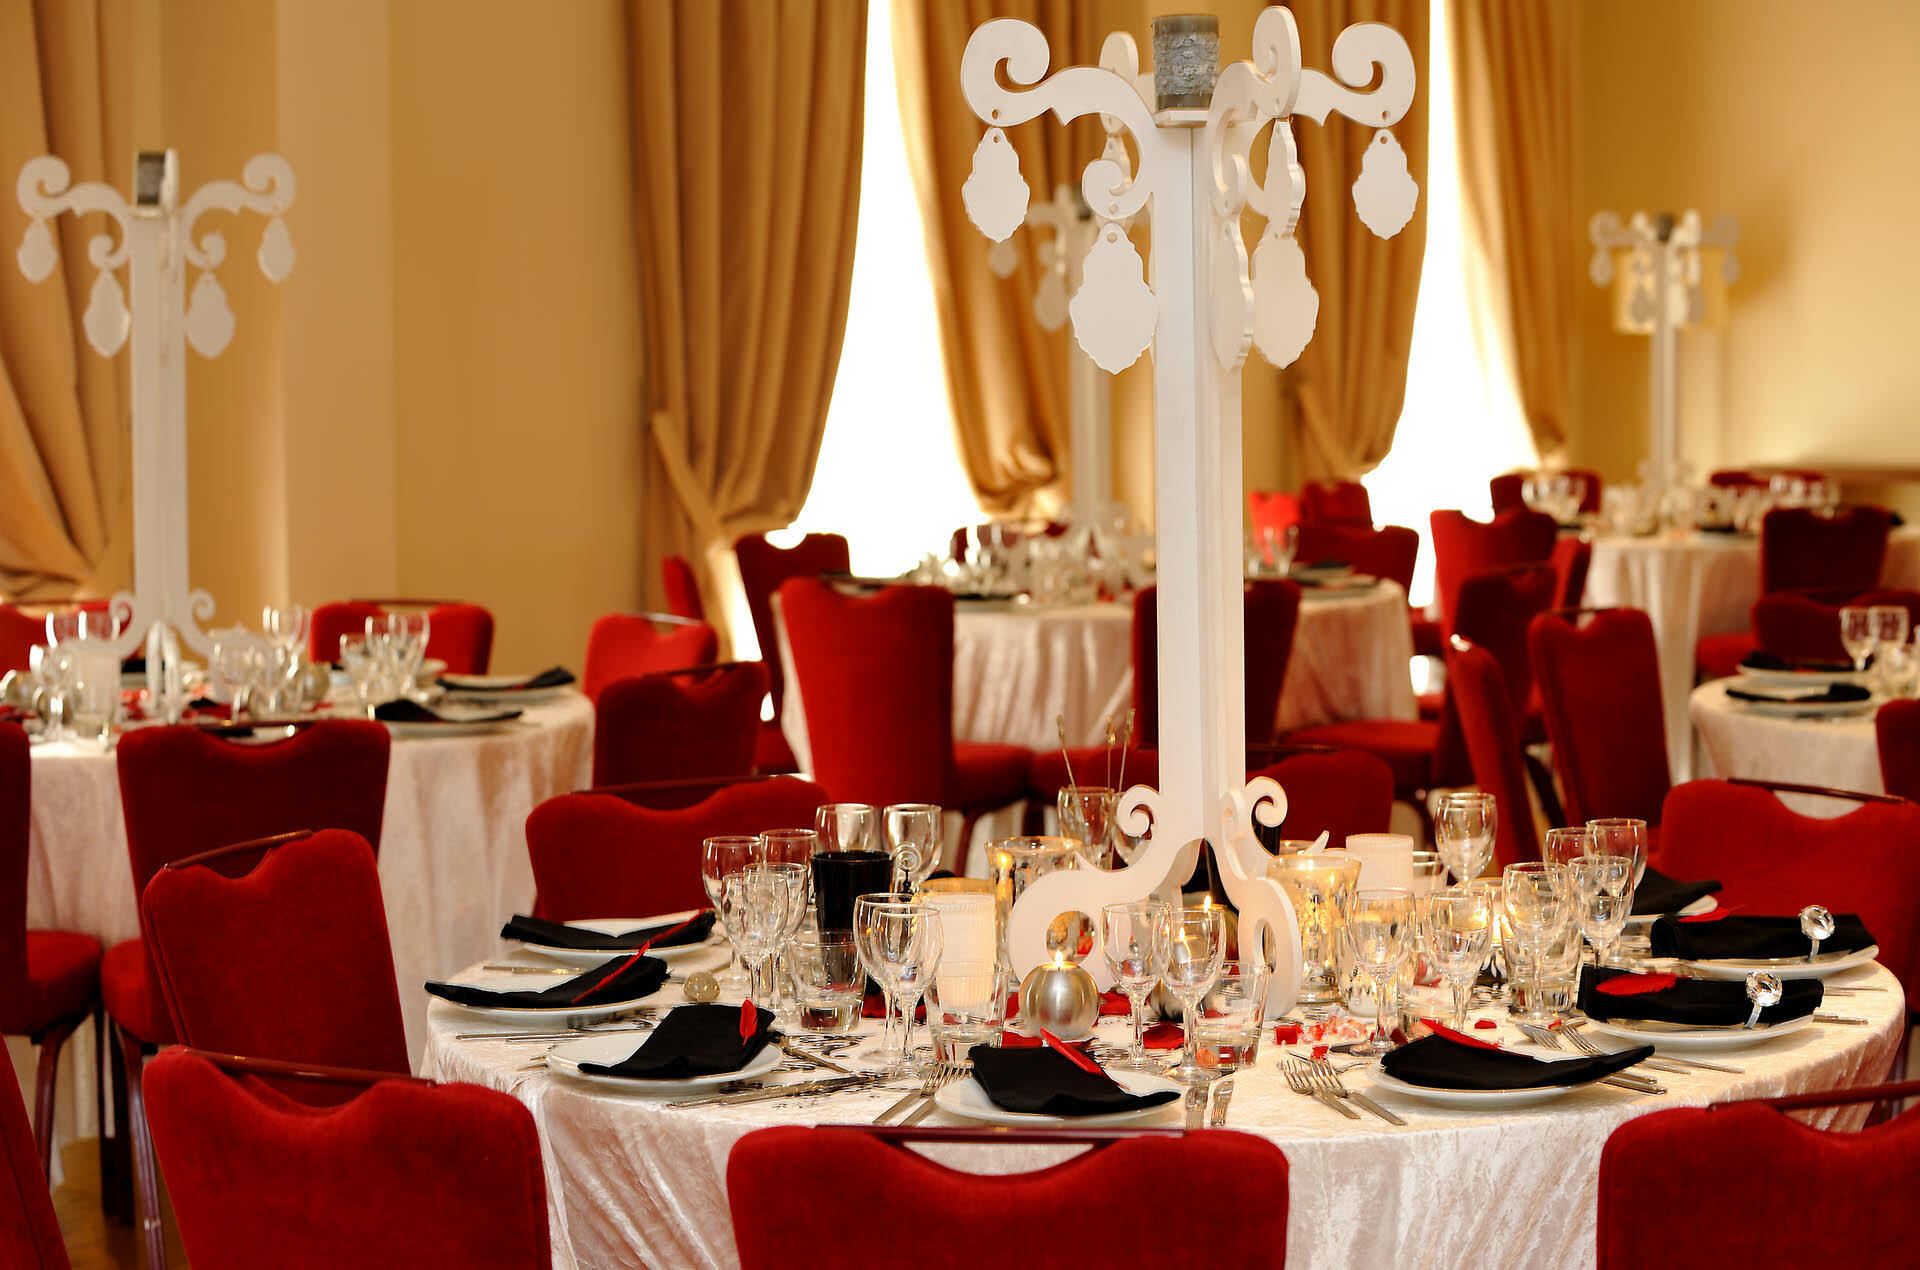 Event room at Partouche Hotels in France